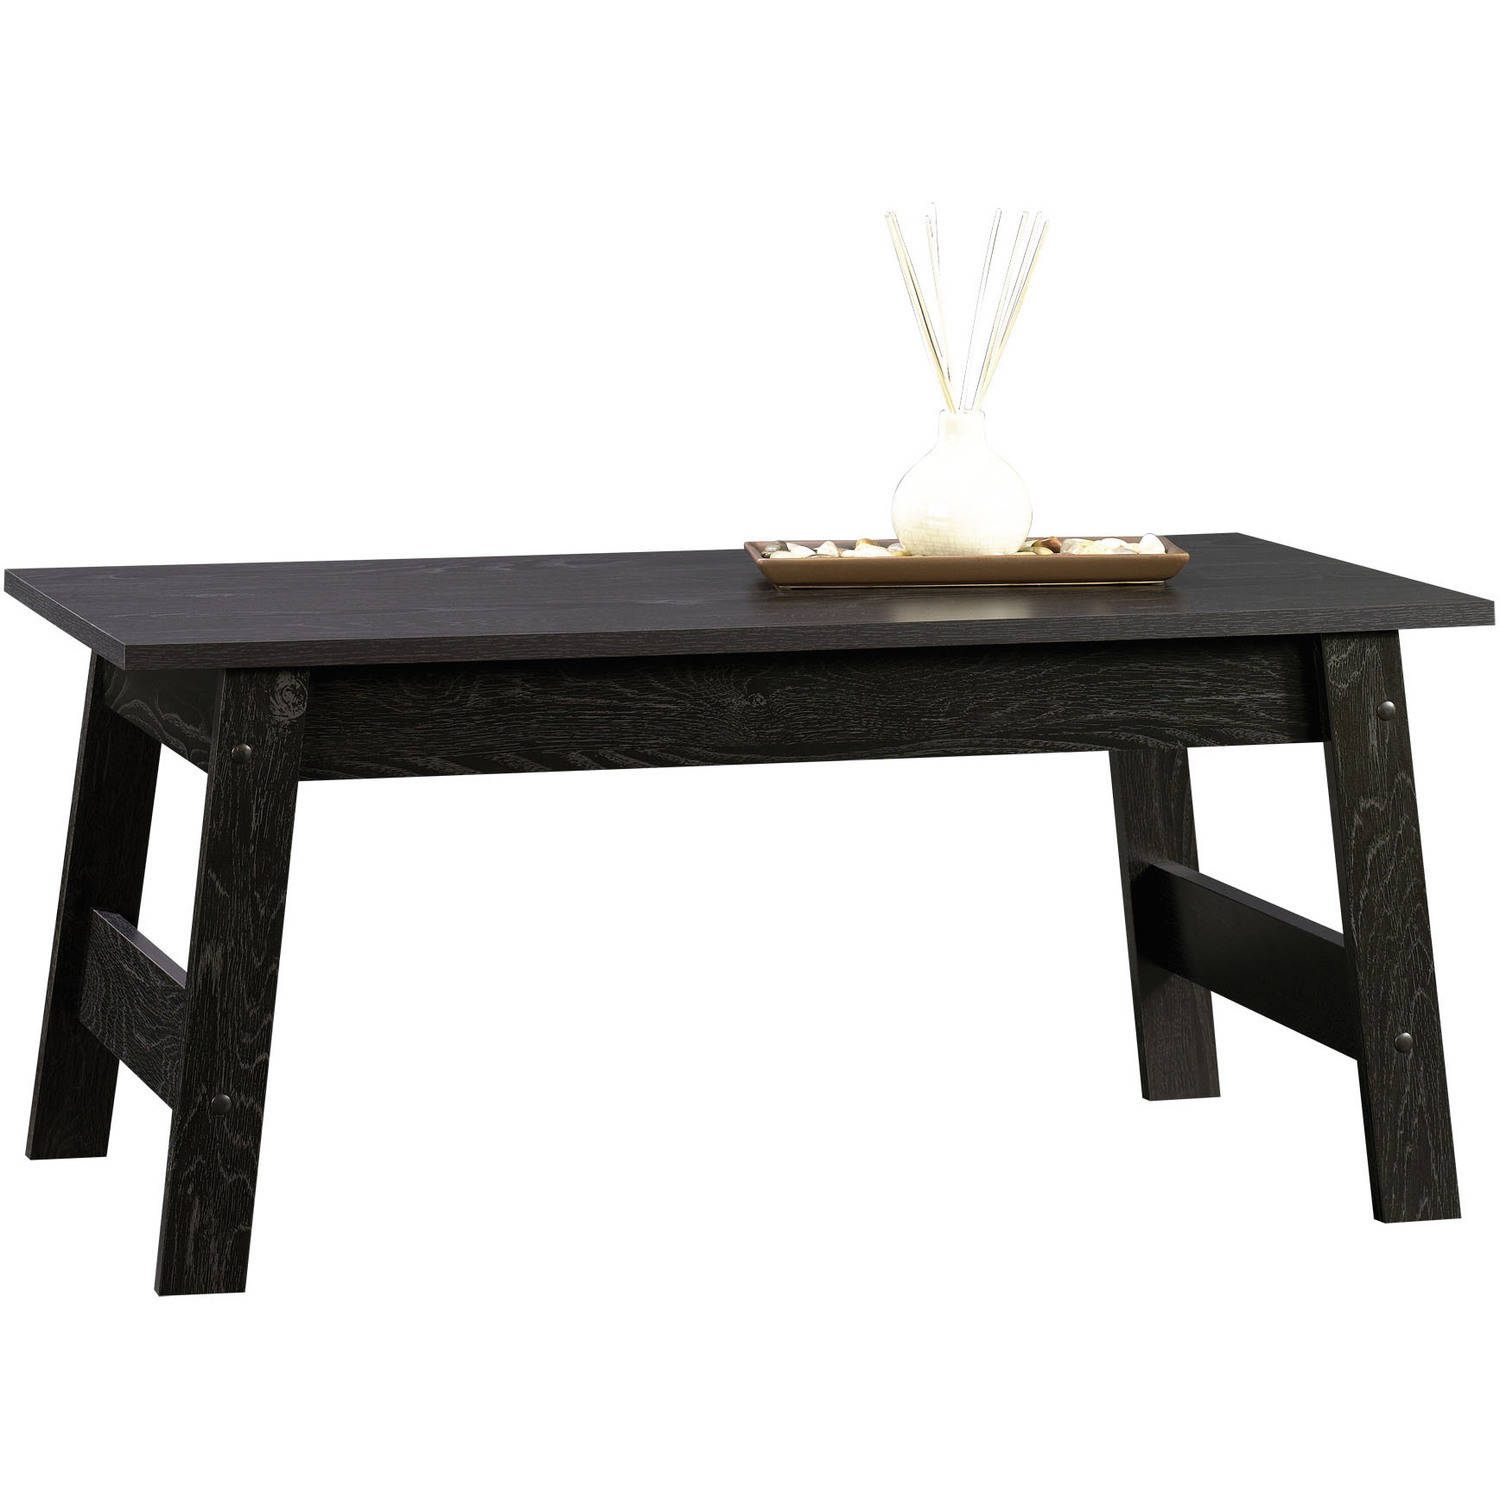 Ordinaire Sauder Beginnings Collection Coffee Table, Black